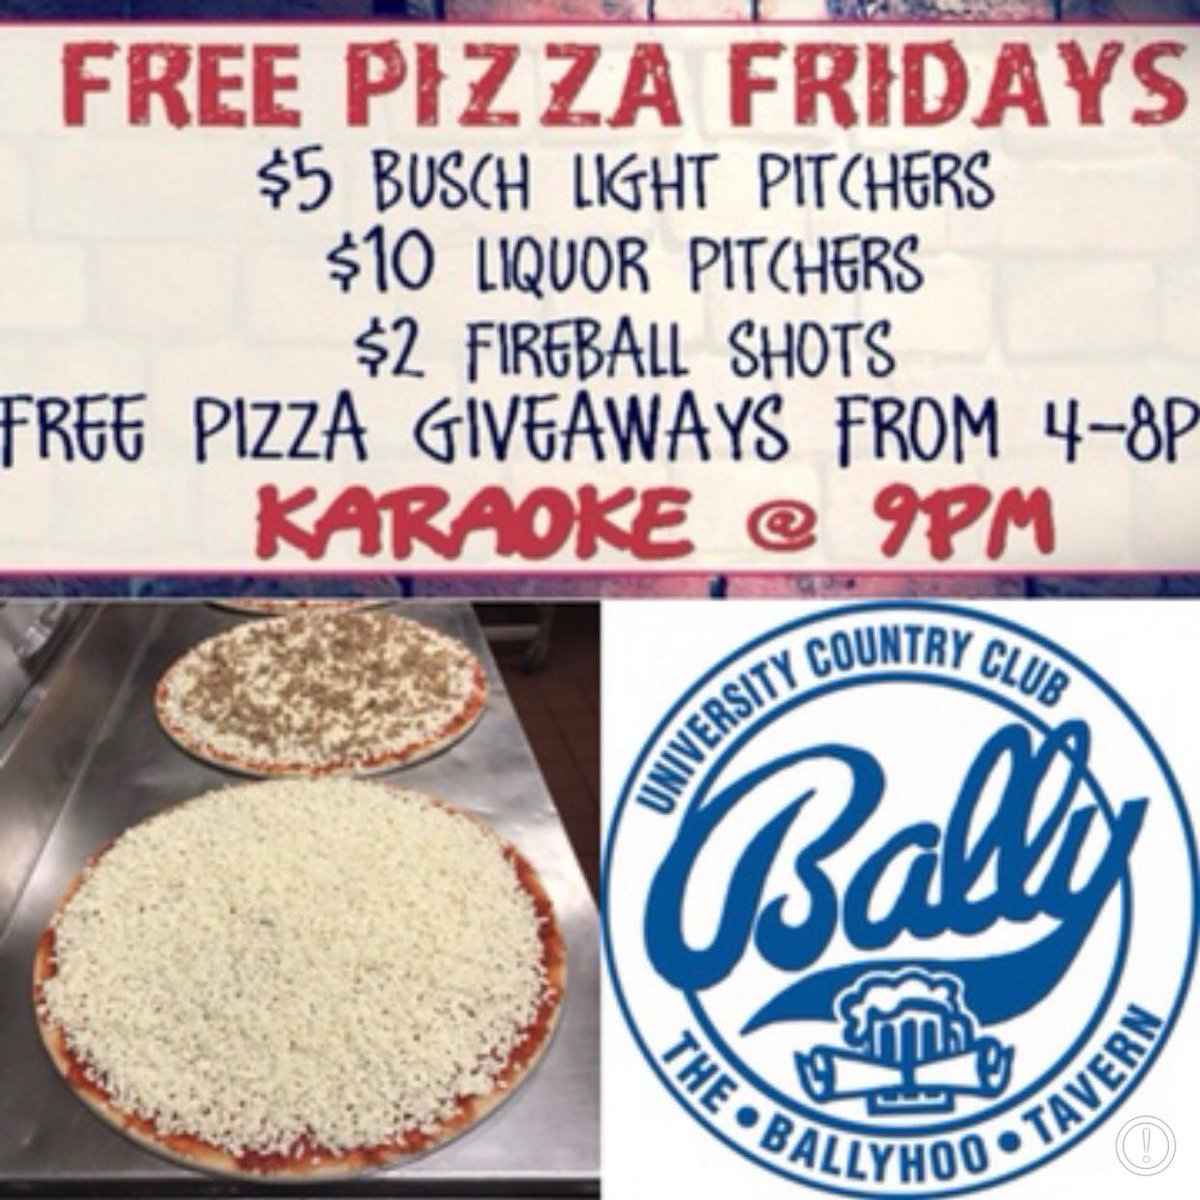 Only a couple more hours till the first free pizza of the semester, who's it going to? #freepizzafriday #pitcherdays<br>http://pic.twitter.com/UYMiNsgnft